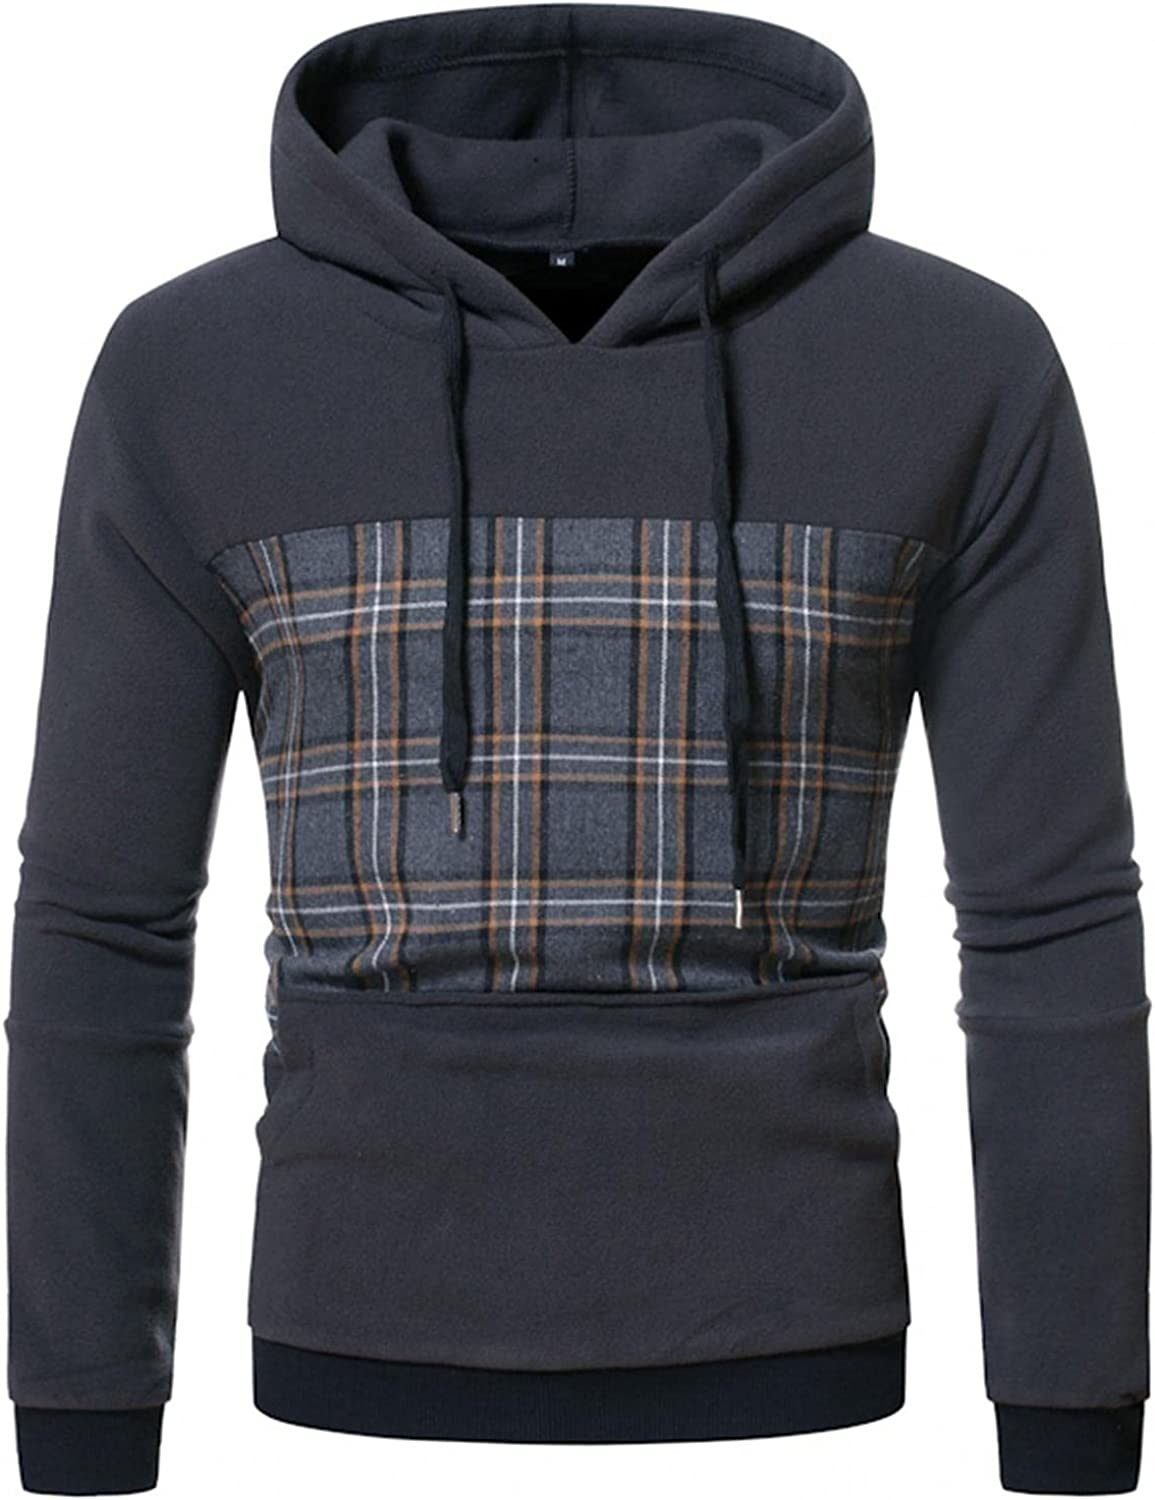 Qsctys Mens Sweatshirts Crewneck Fashion Patchwork Athletic Hoodies Sport Outdoor Casual Pullover Hooded Slim Fit Long Sleeve